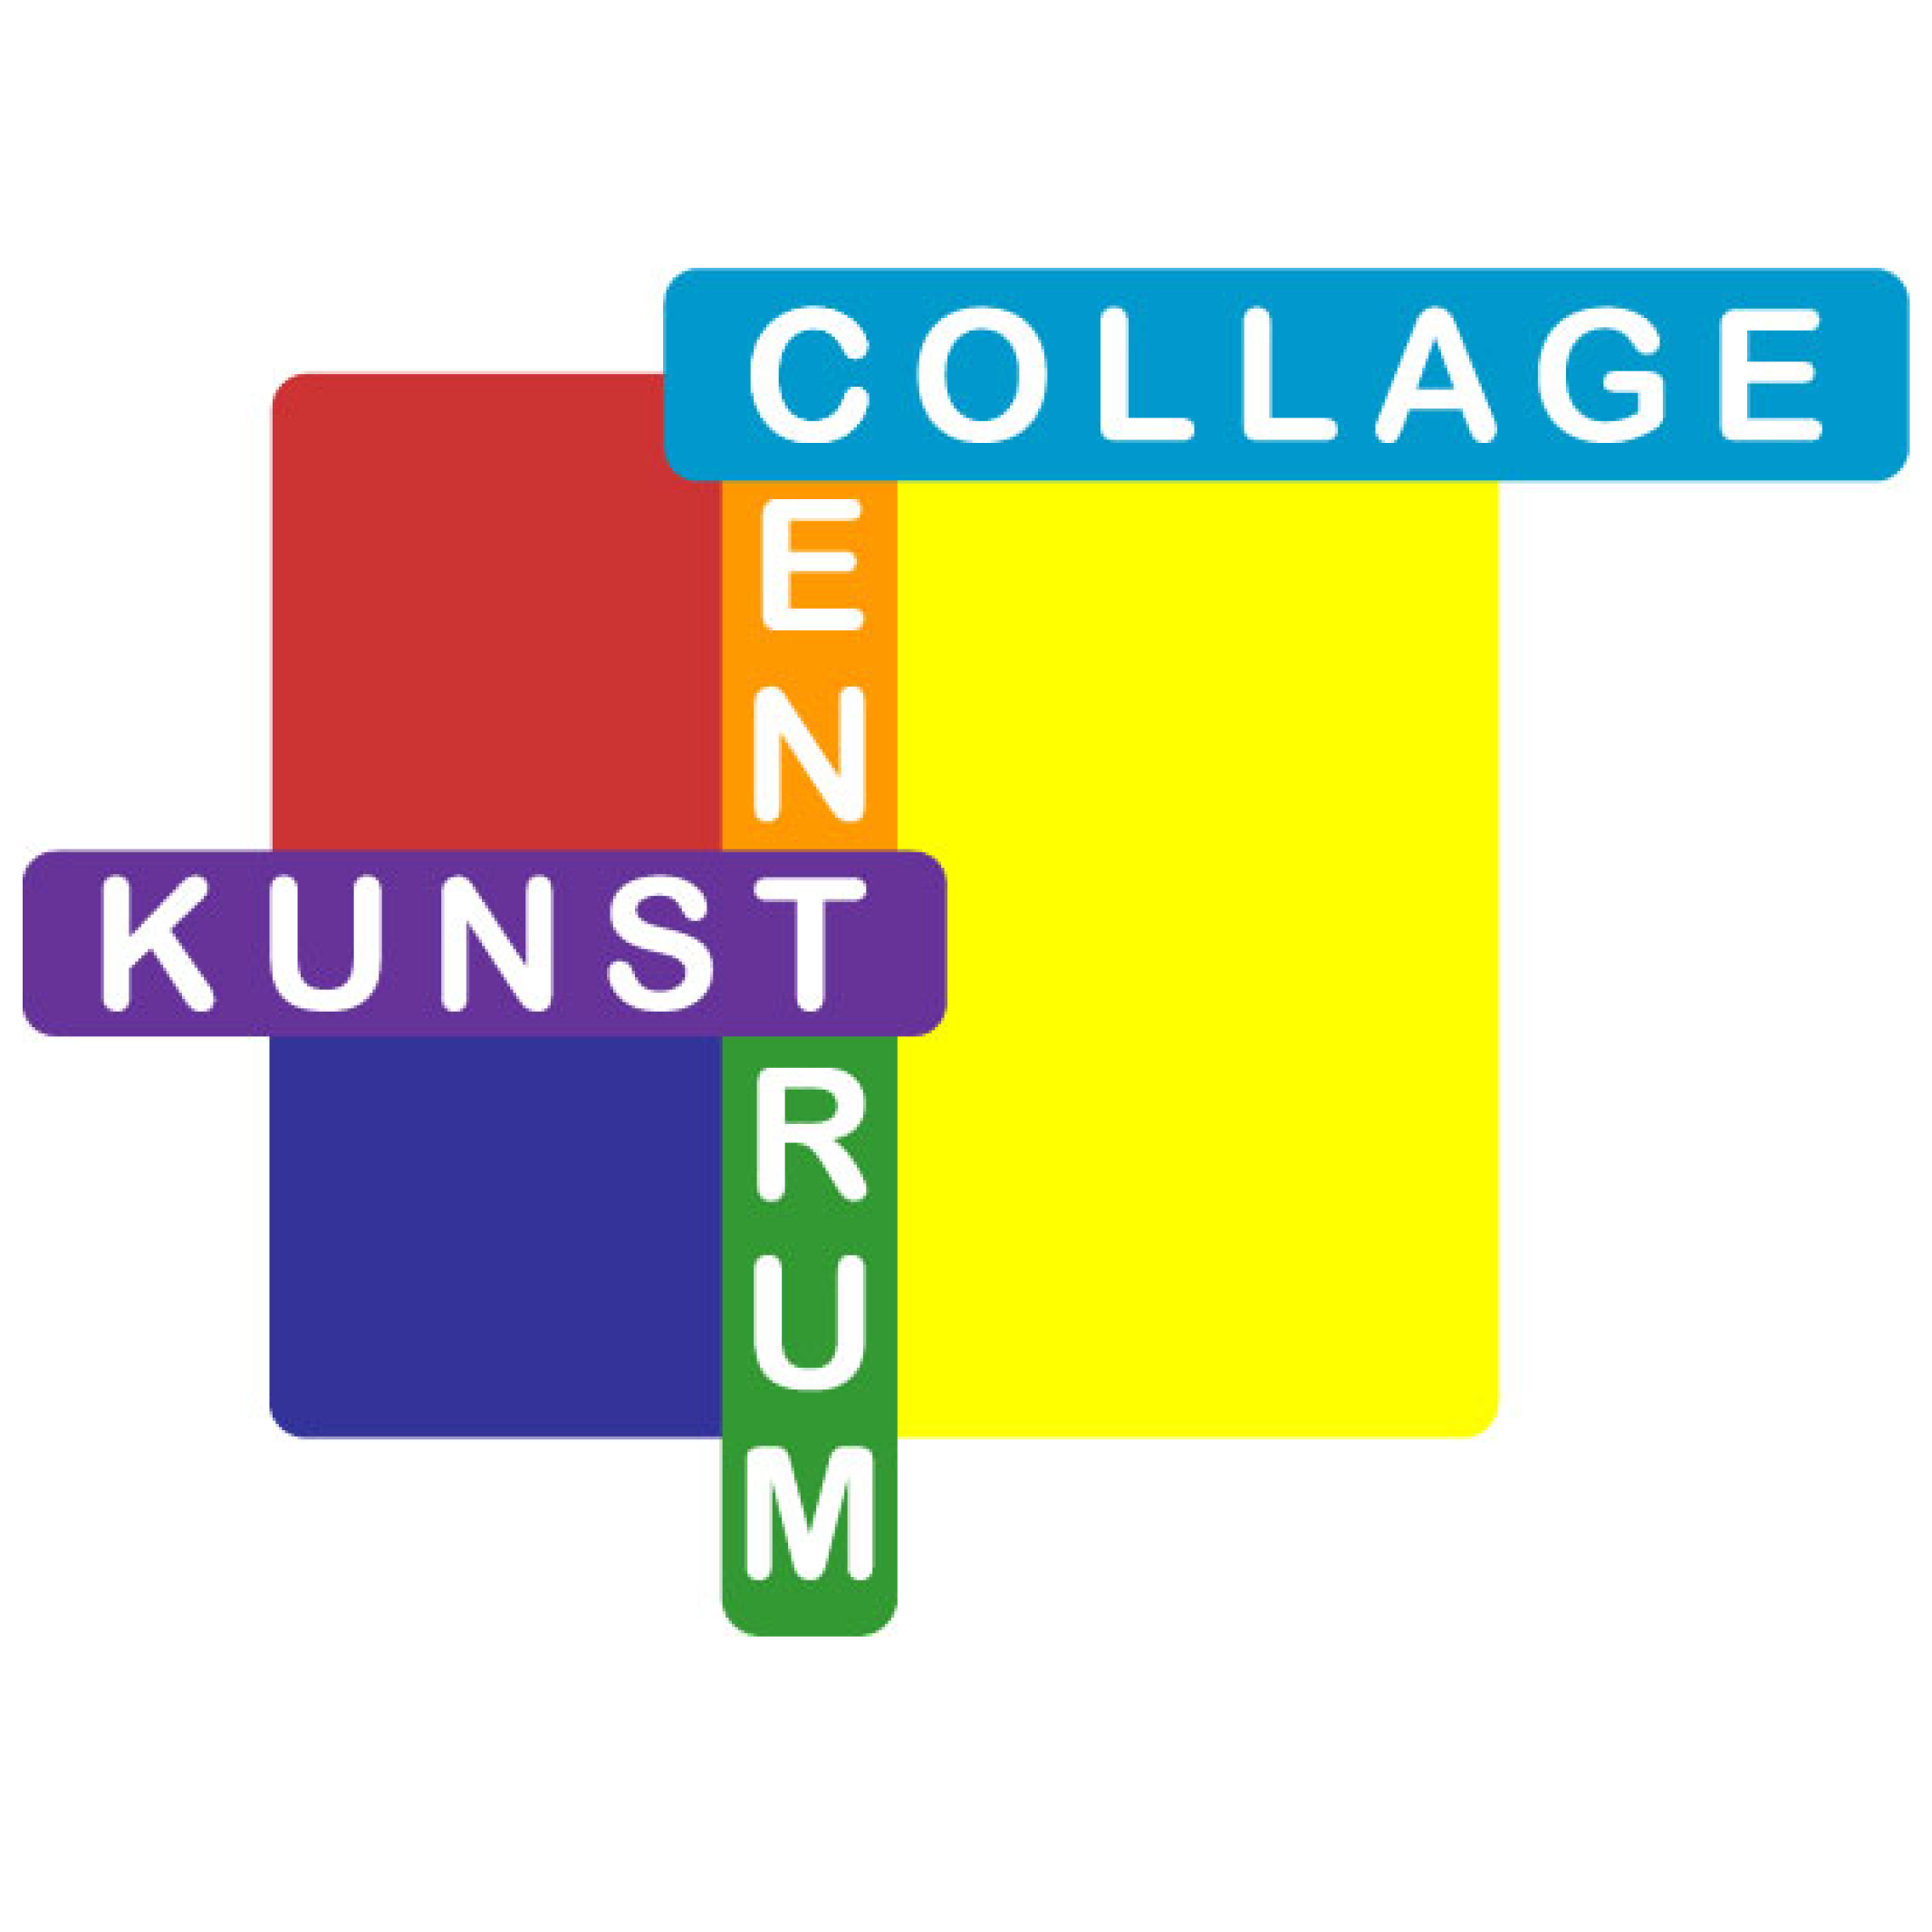 Kunstcentrum Collage┆Hoevelaken